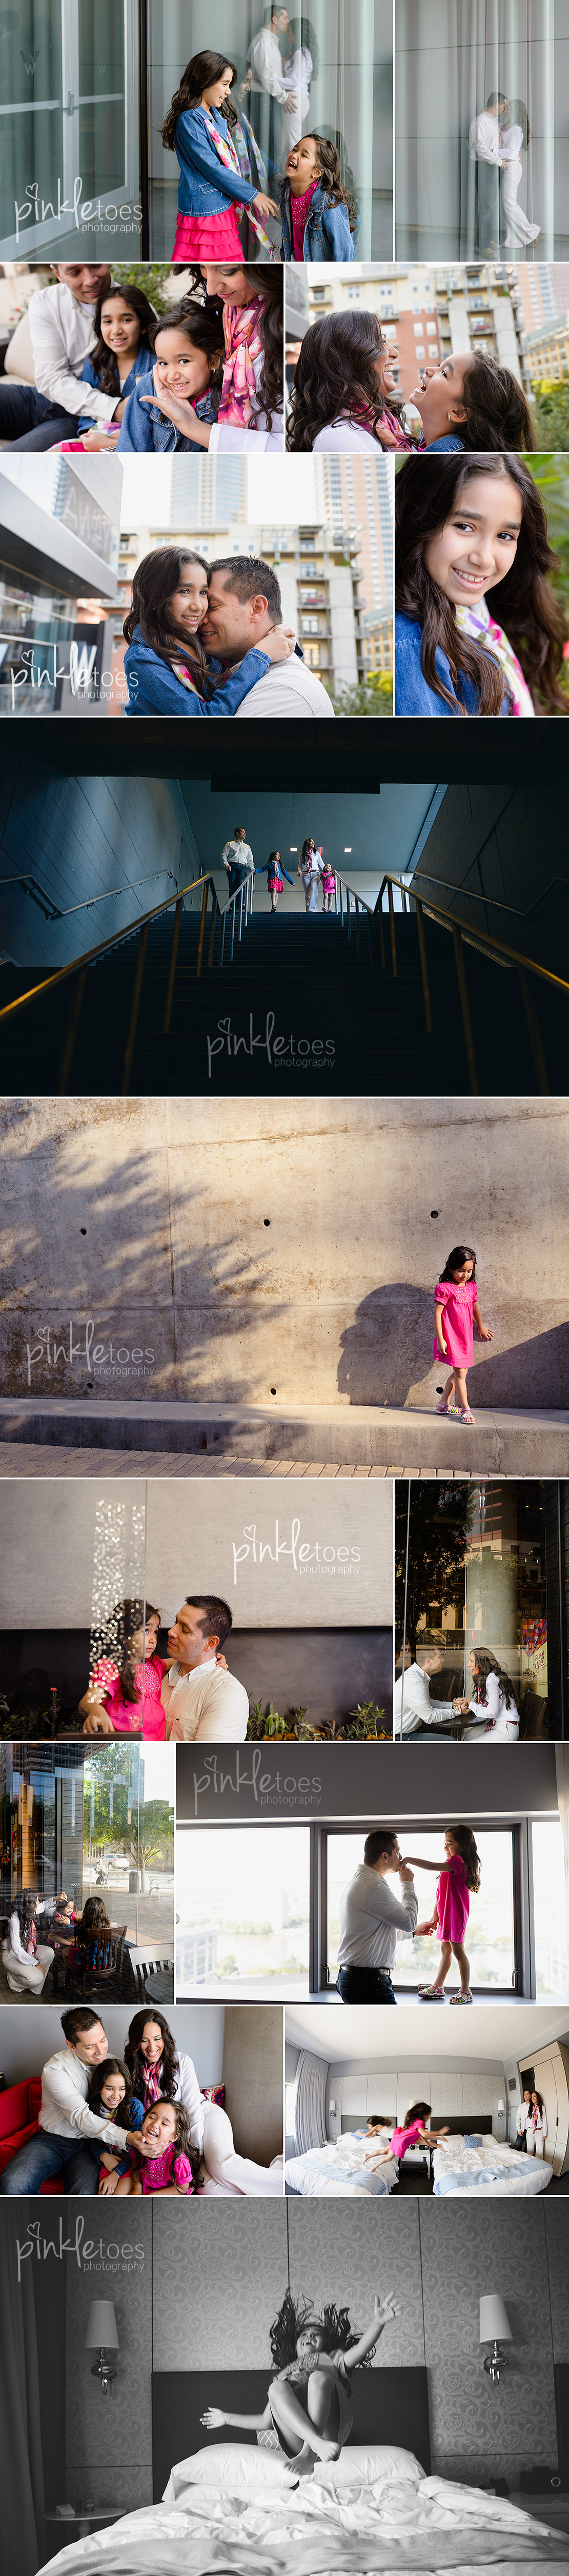 ep-pinkle-toes-hip-modern-urban-family-photo-shoot-downtown-austin-w-hotel